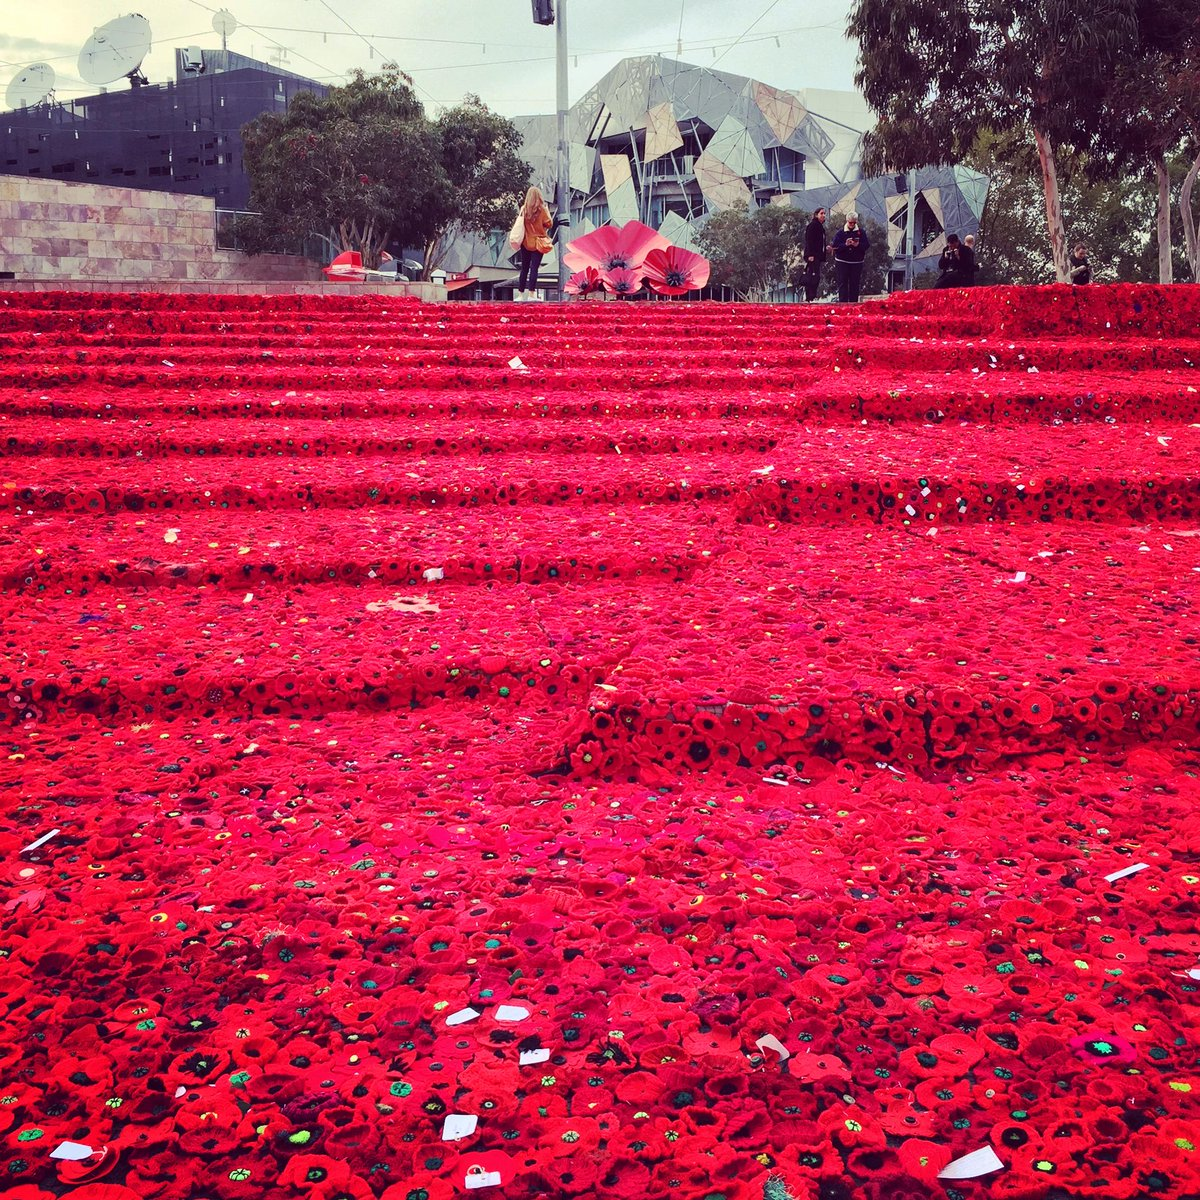 .@Fed_Square has been filled with crotchet poppies to commemorate #AnzacDay. More info: http://t.co/qOEU8Hi1mK http://t.co/spiOrvu82k